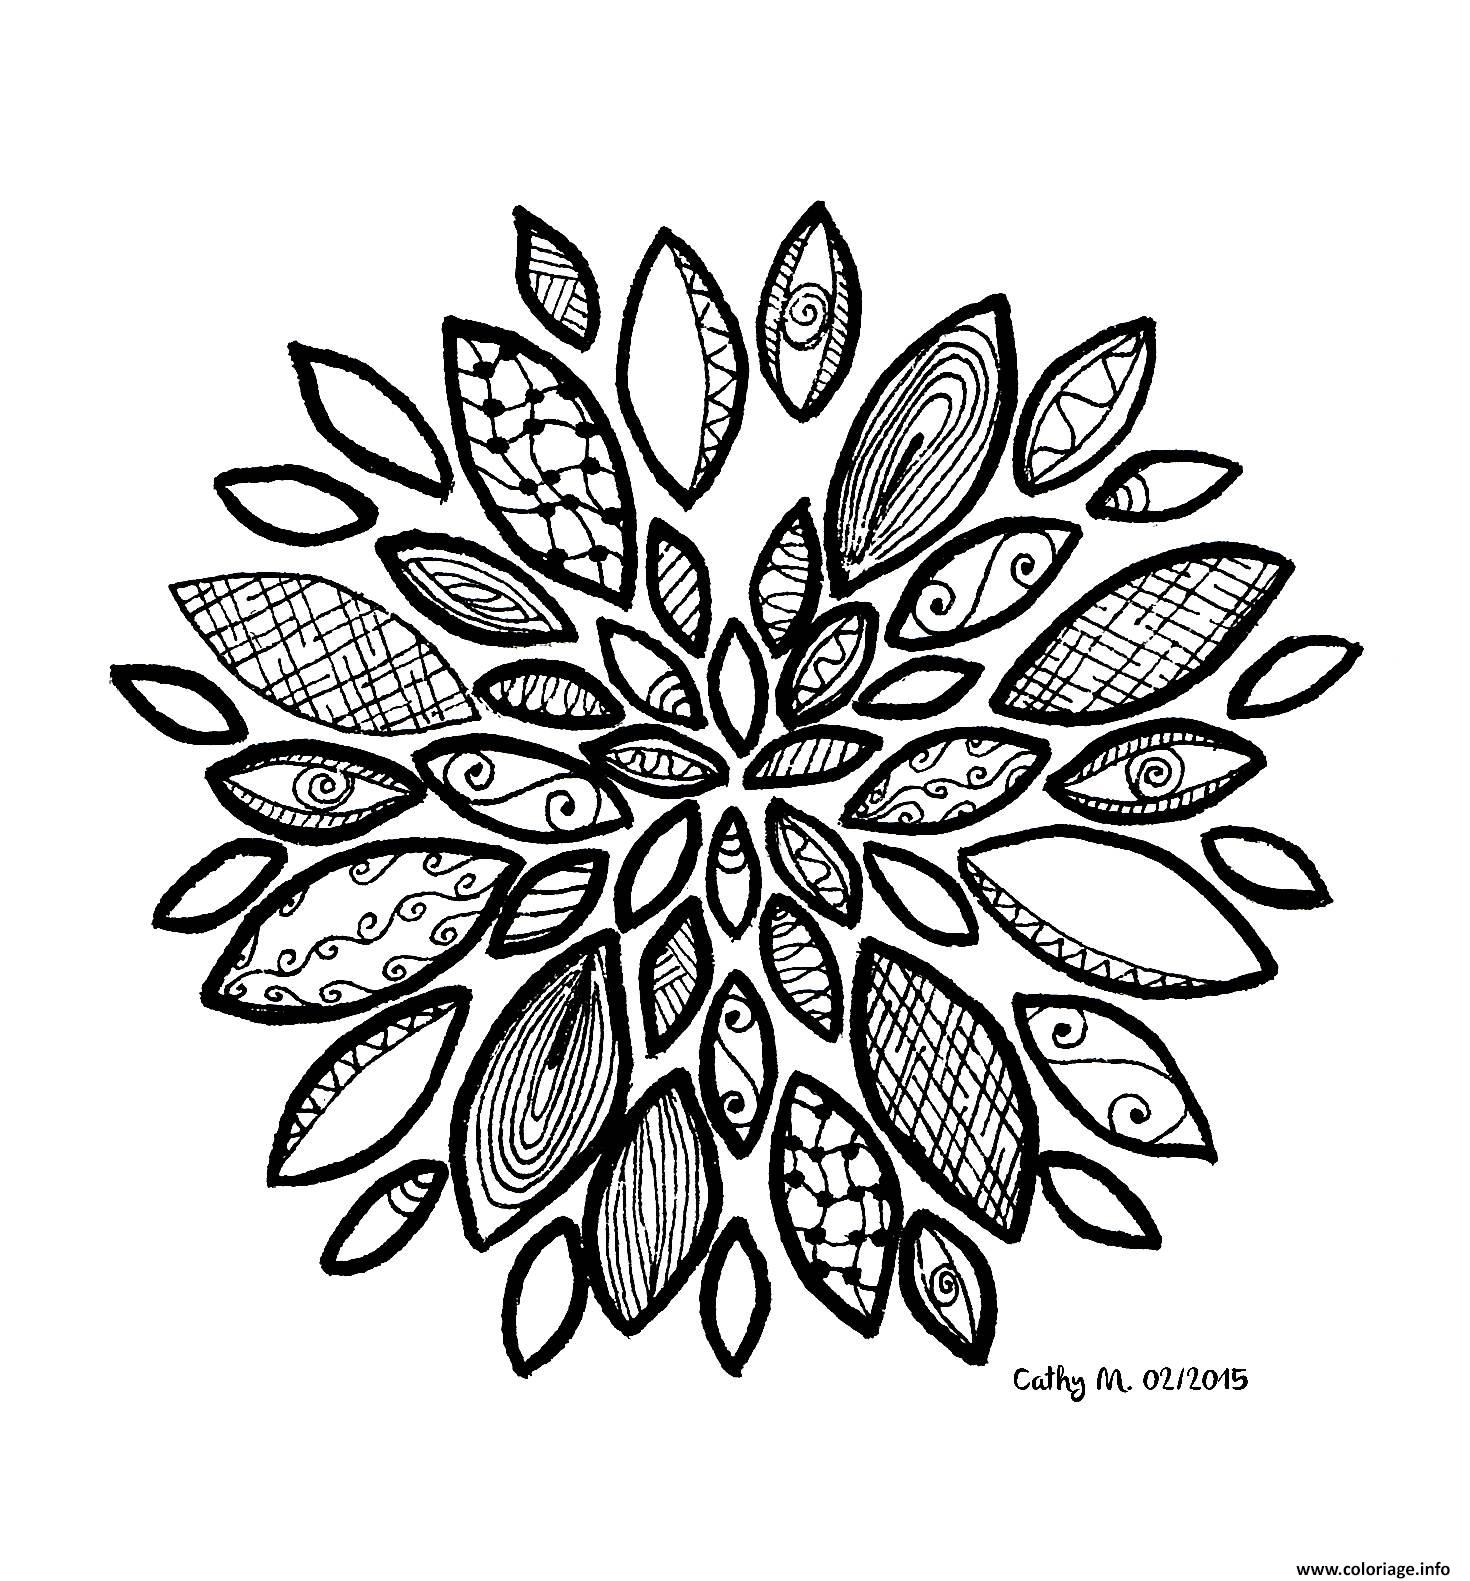 Dessin adulte zentangle by cathym 20 Coloriage Gratuit à Imprimer